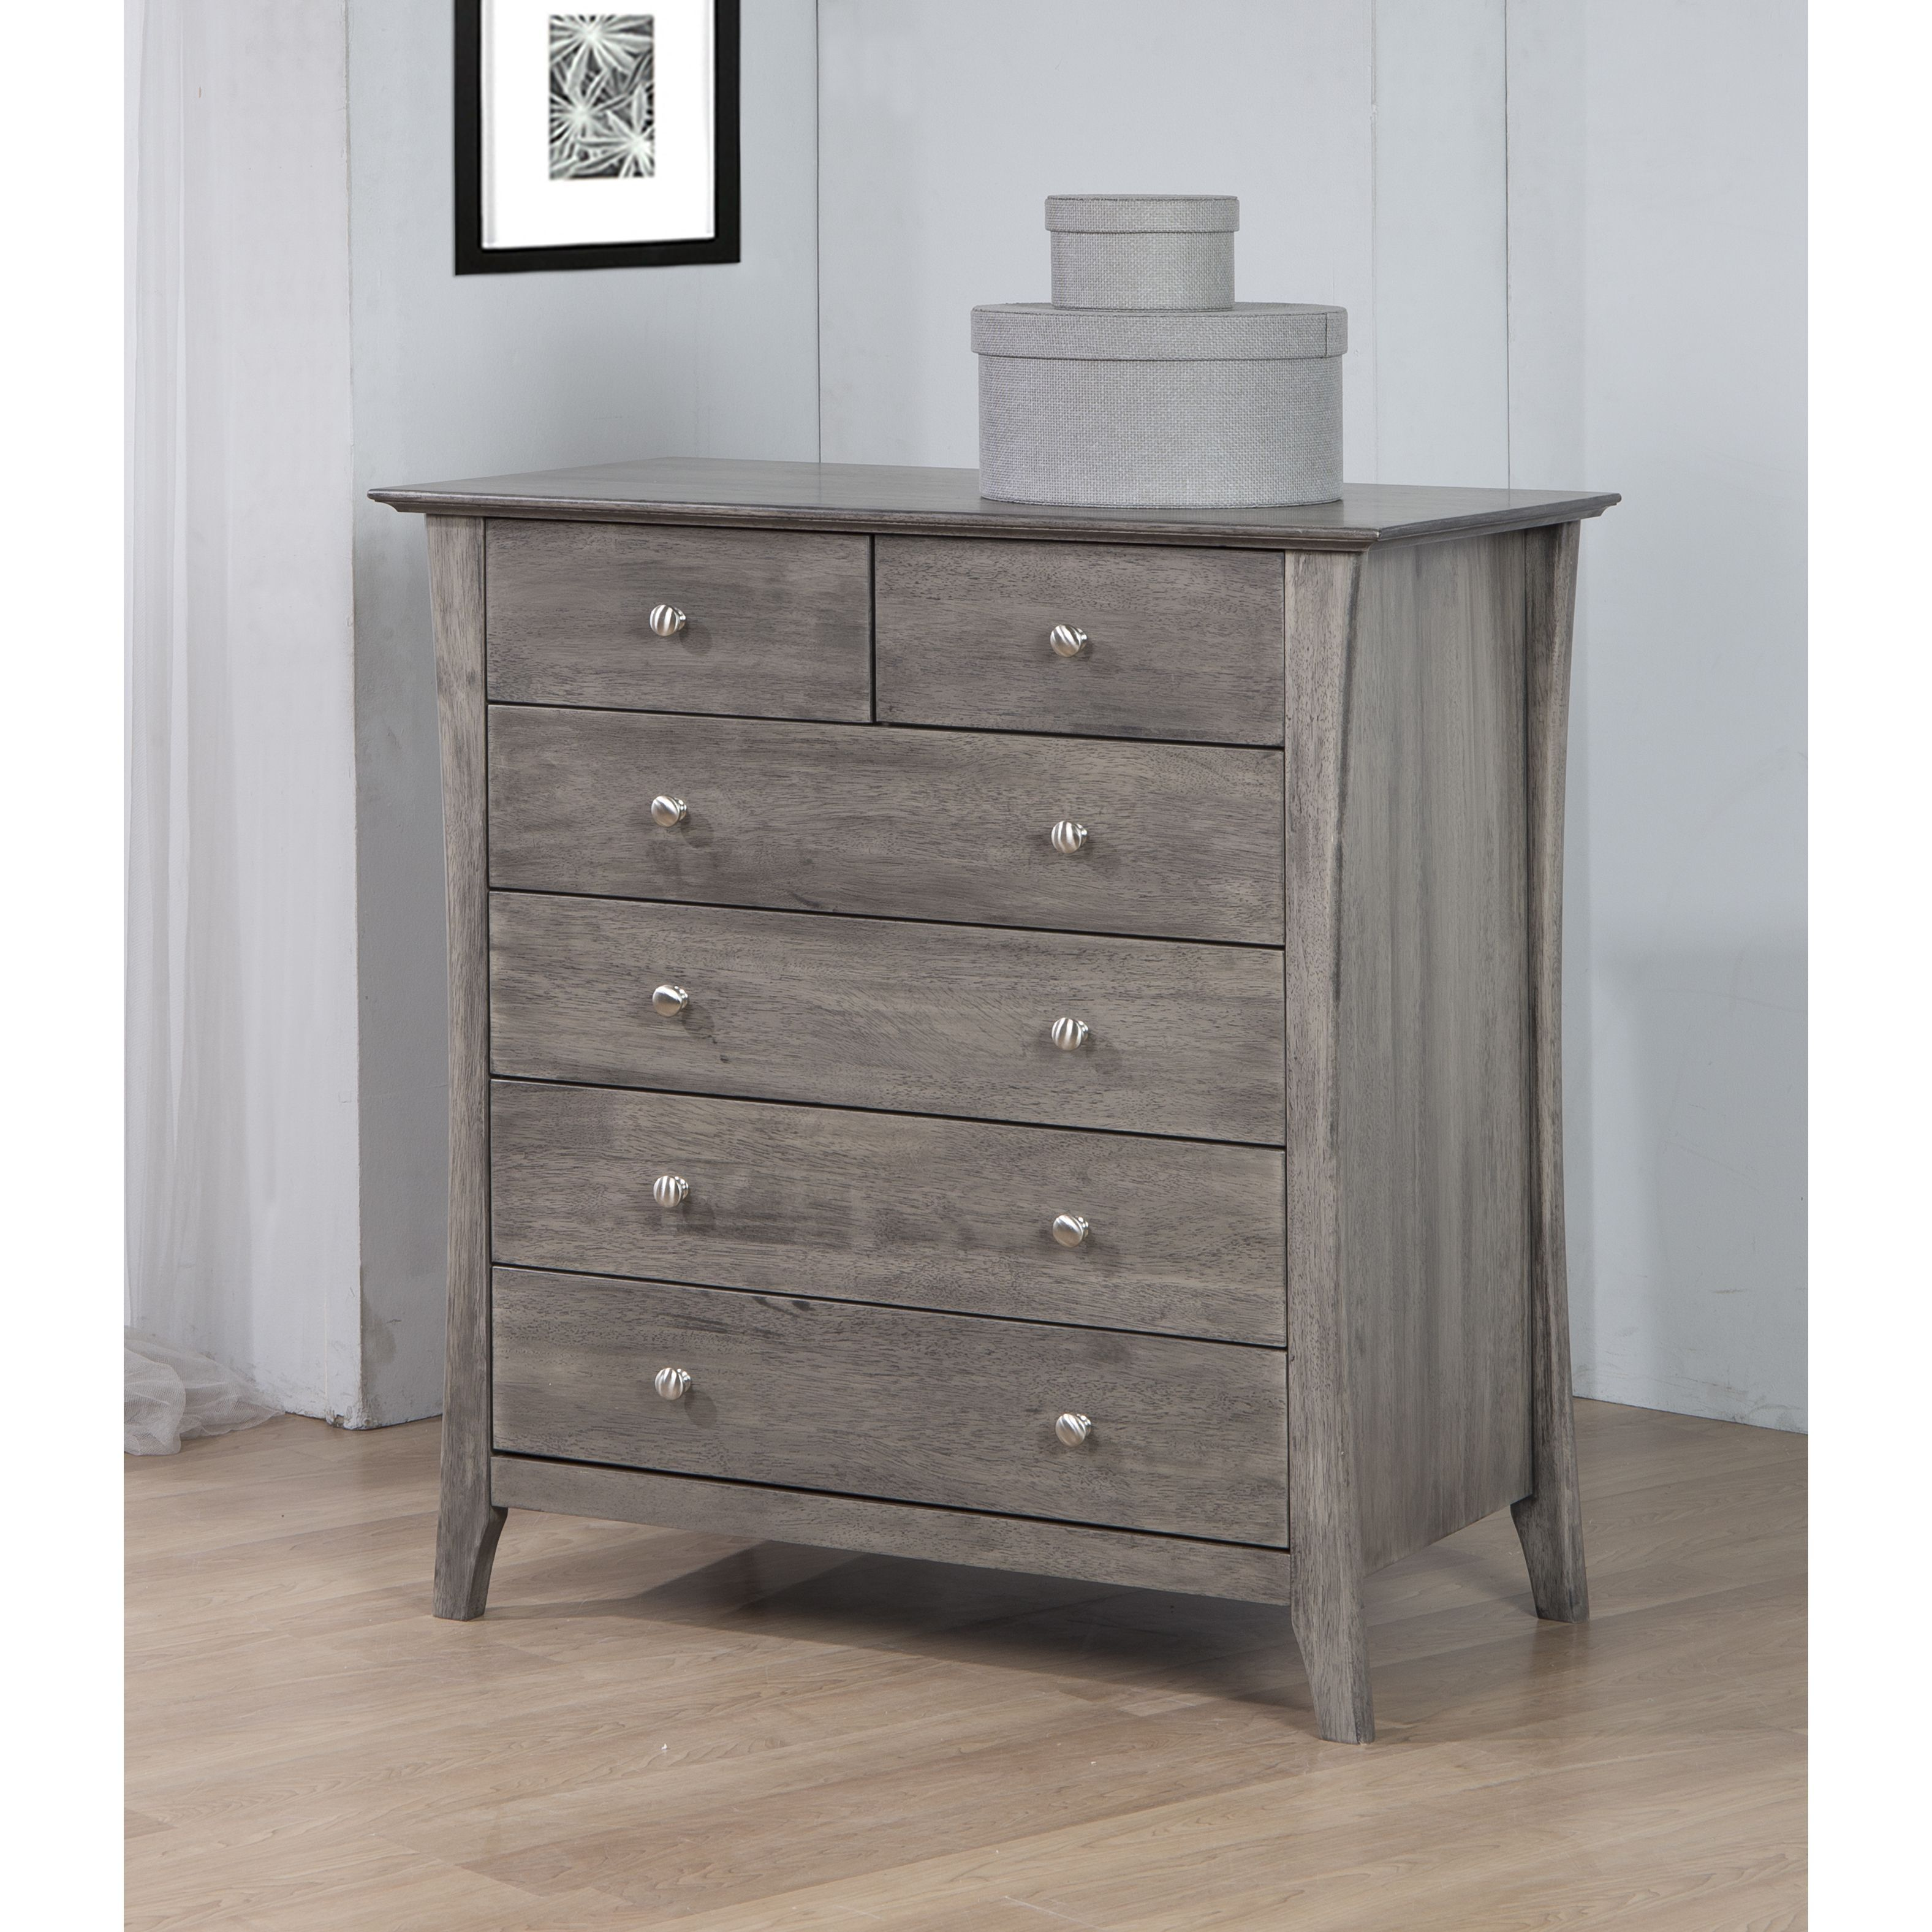 A Modern Take On Clic Design This Vermont Stone 6 Drawer Chest Seamlessly